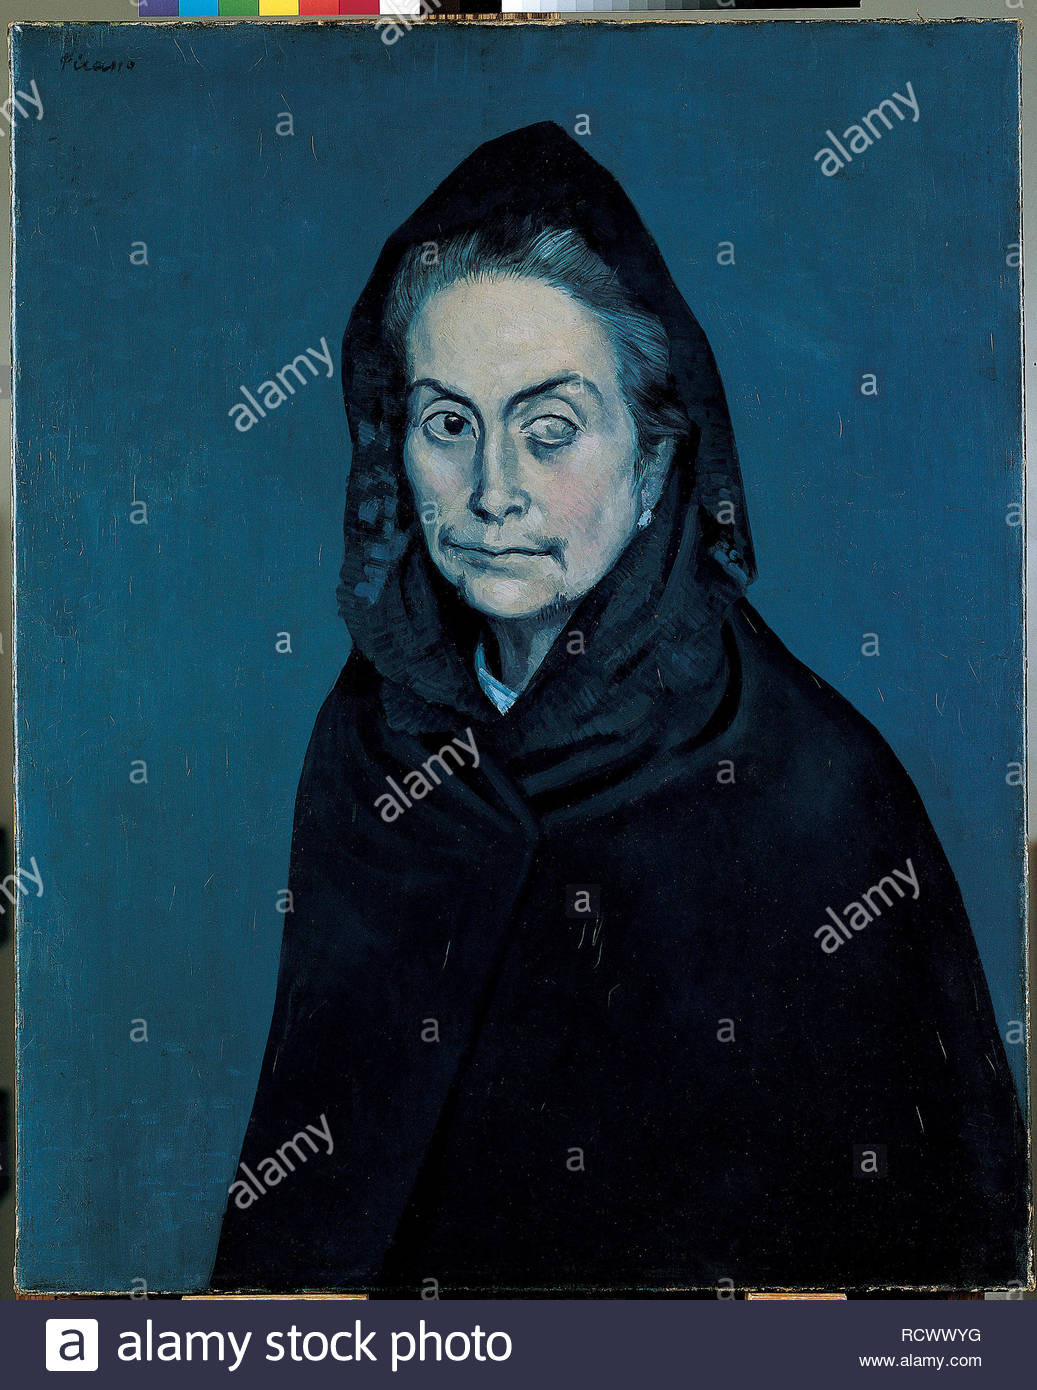 La Celestina (La Célestine). Museum: Musée Picasso, Paris. Copyright: This artwork is not in public domain. It is your responsibility to obtain all necessary third party permissions from the copyright handler in your country prior to publication. - Stock Image